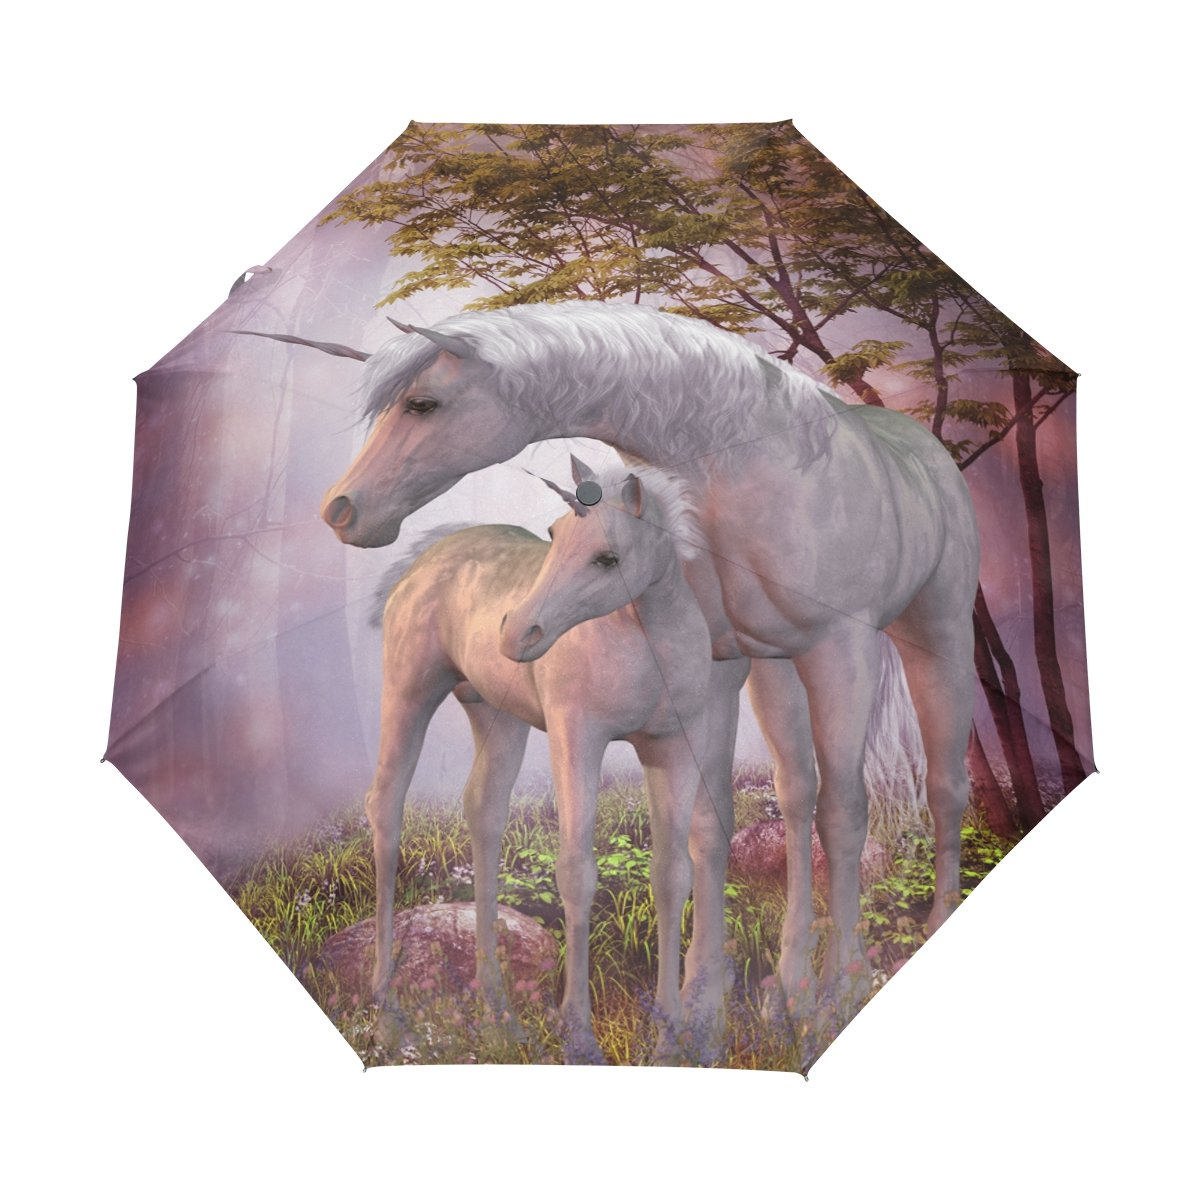 Naanle Unicorns Peaceful Magical Forest Auto Open Close Foldable Windproof Umbrella   B075JFW1RB